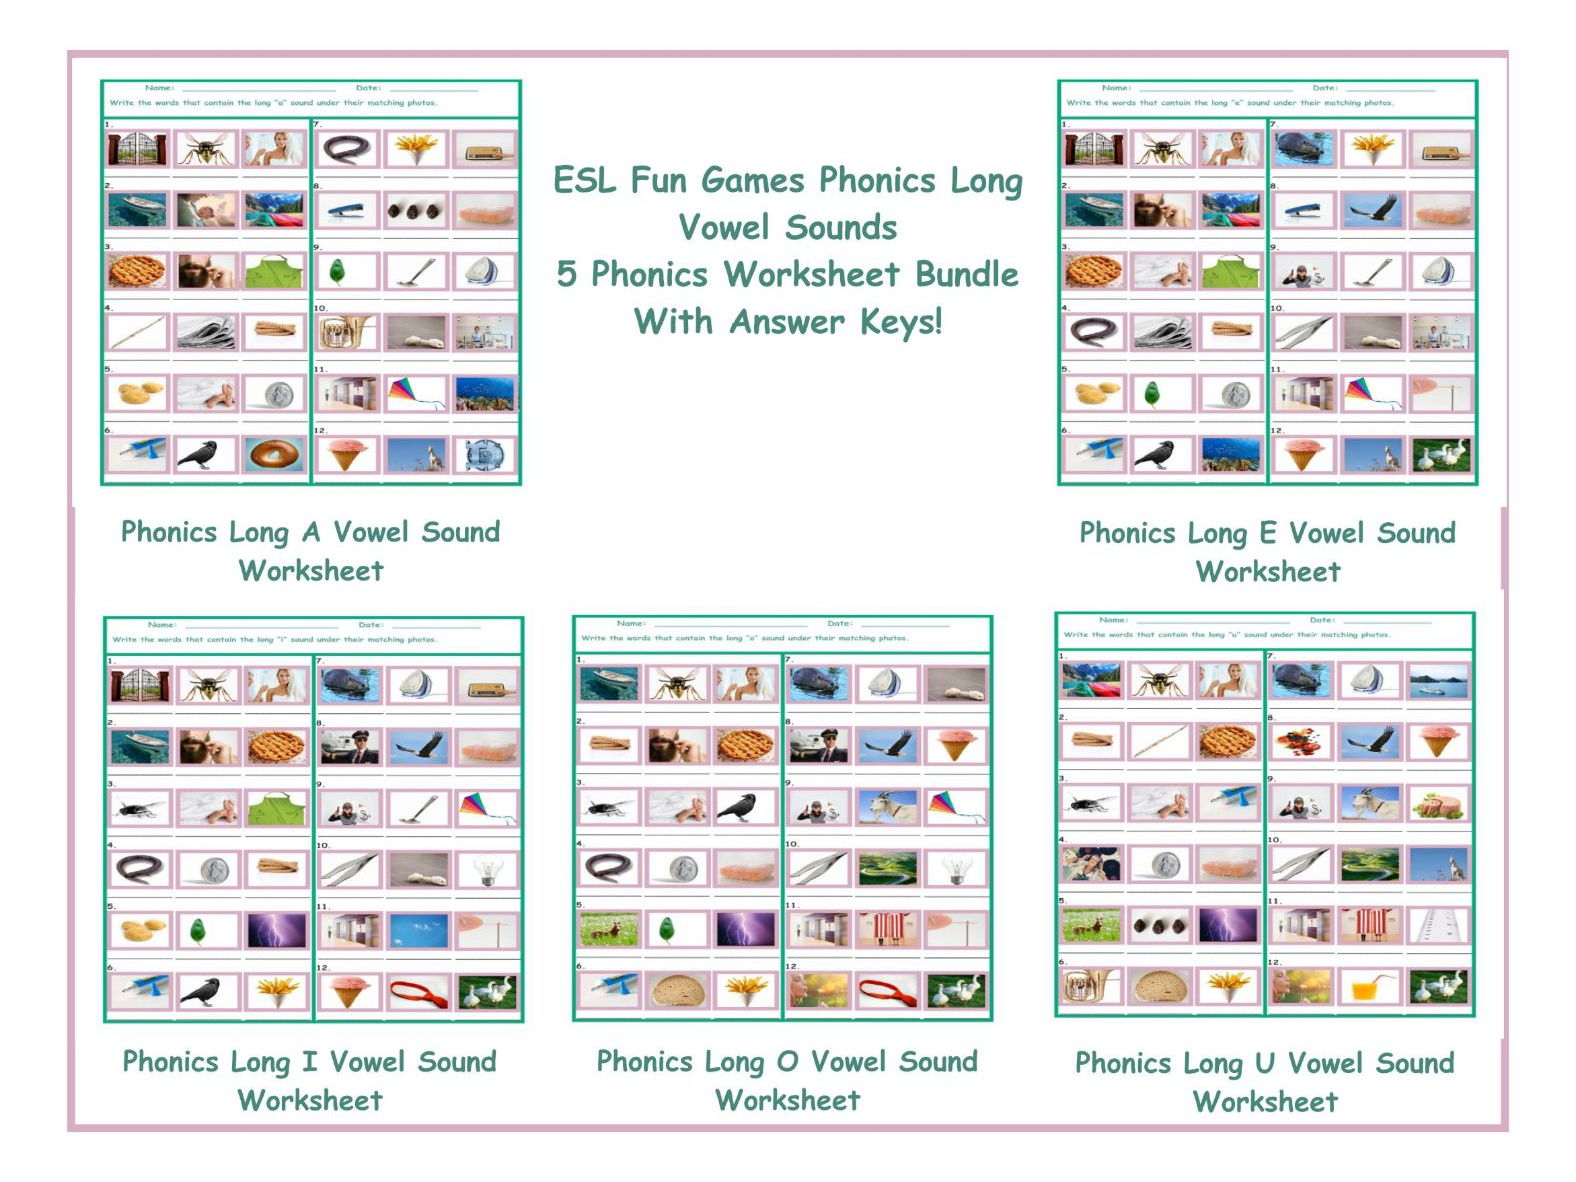 Phonics Long Vowel Sounds 5 Worksheet Bundle By